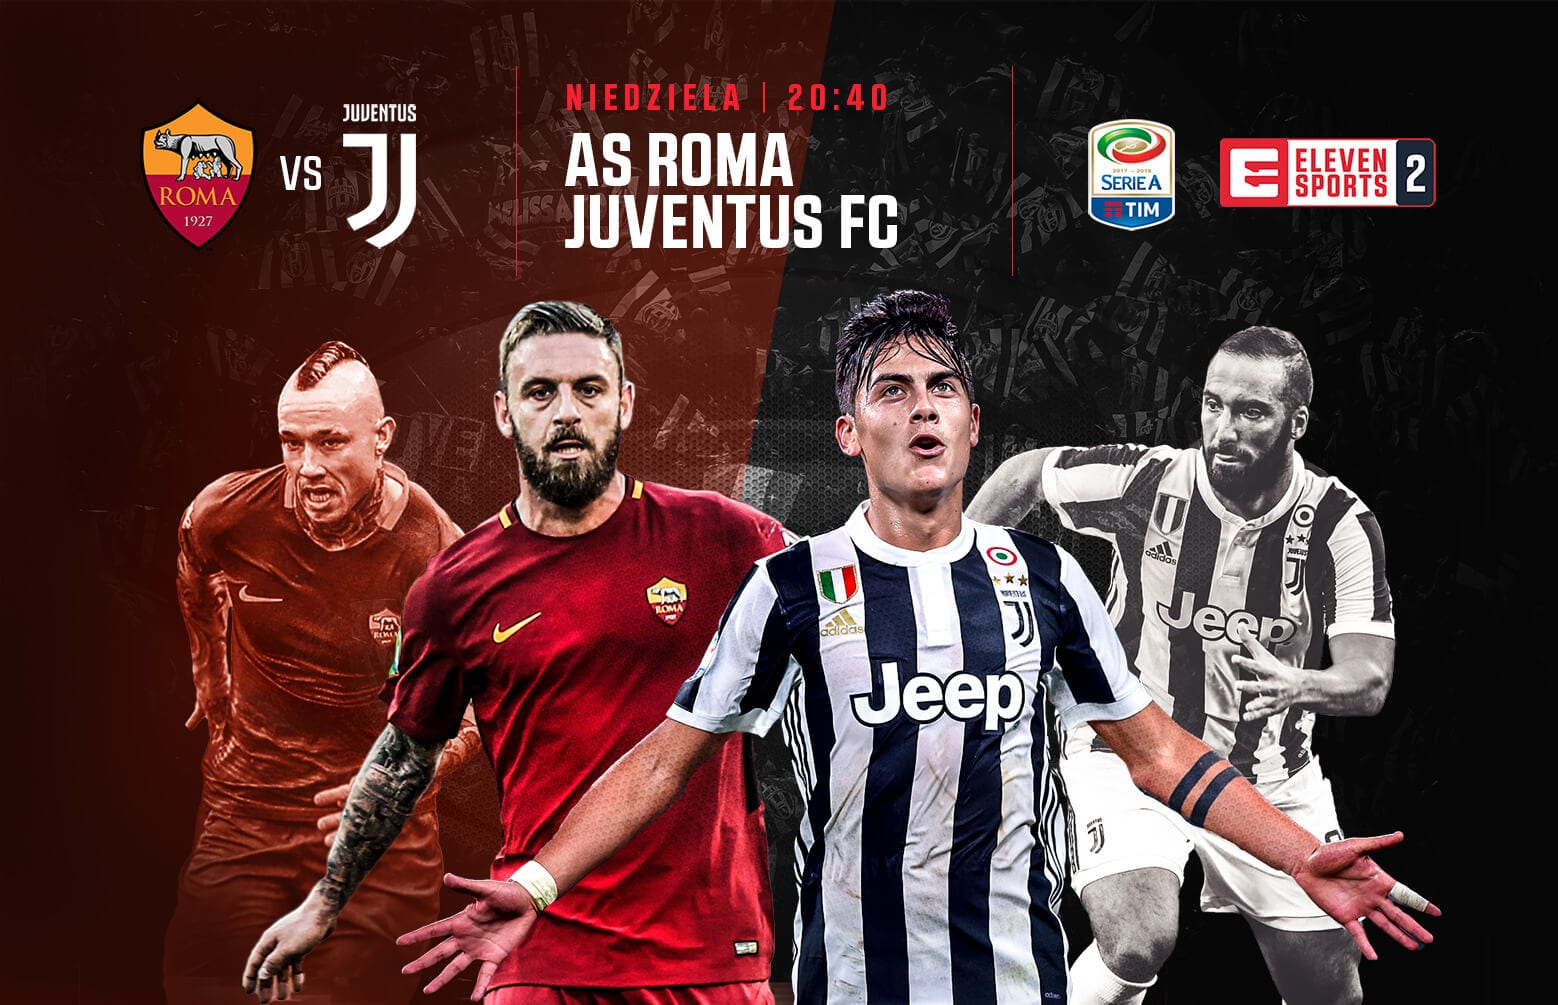 AS Roma Juventus FC w ELEVEN SPORTS